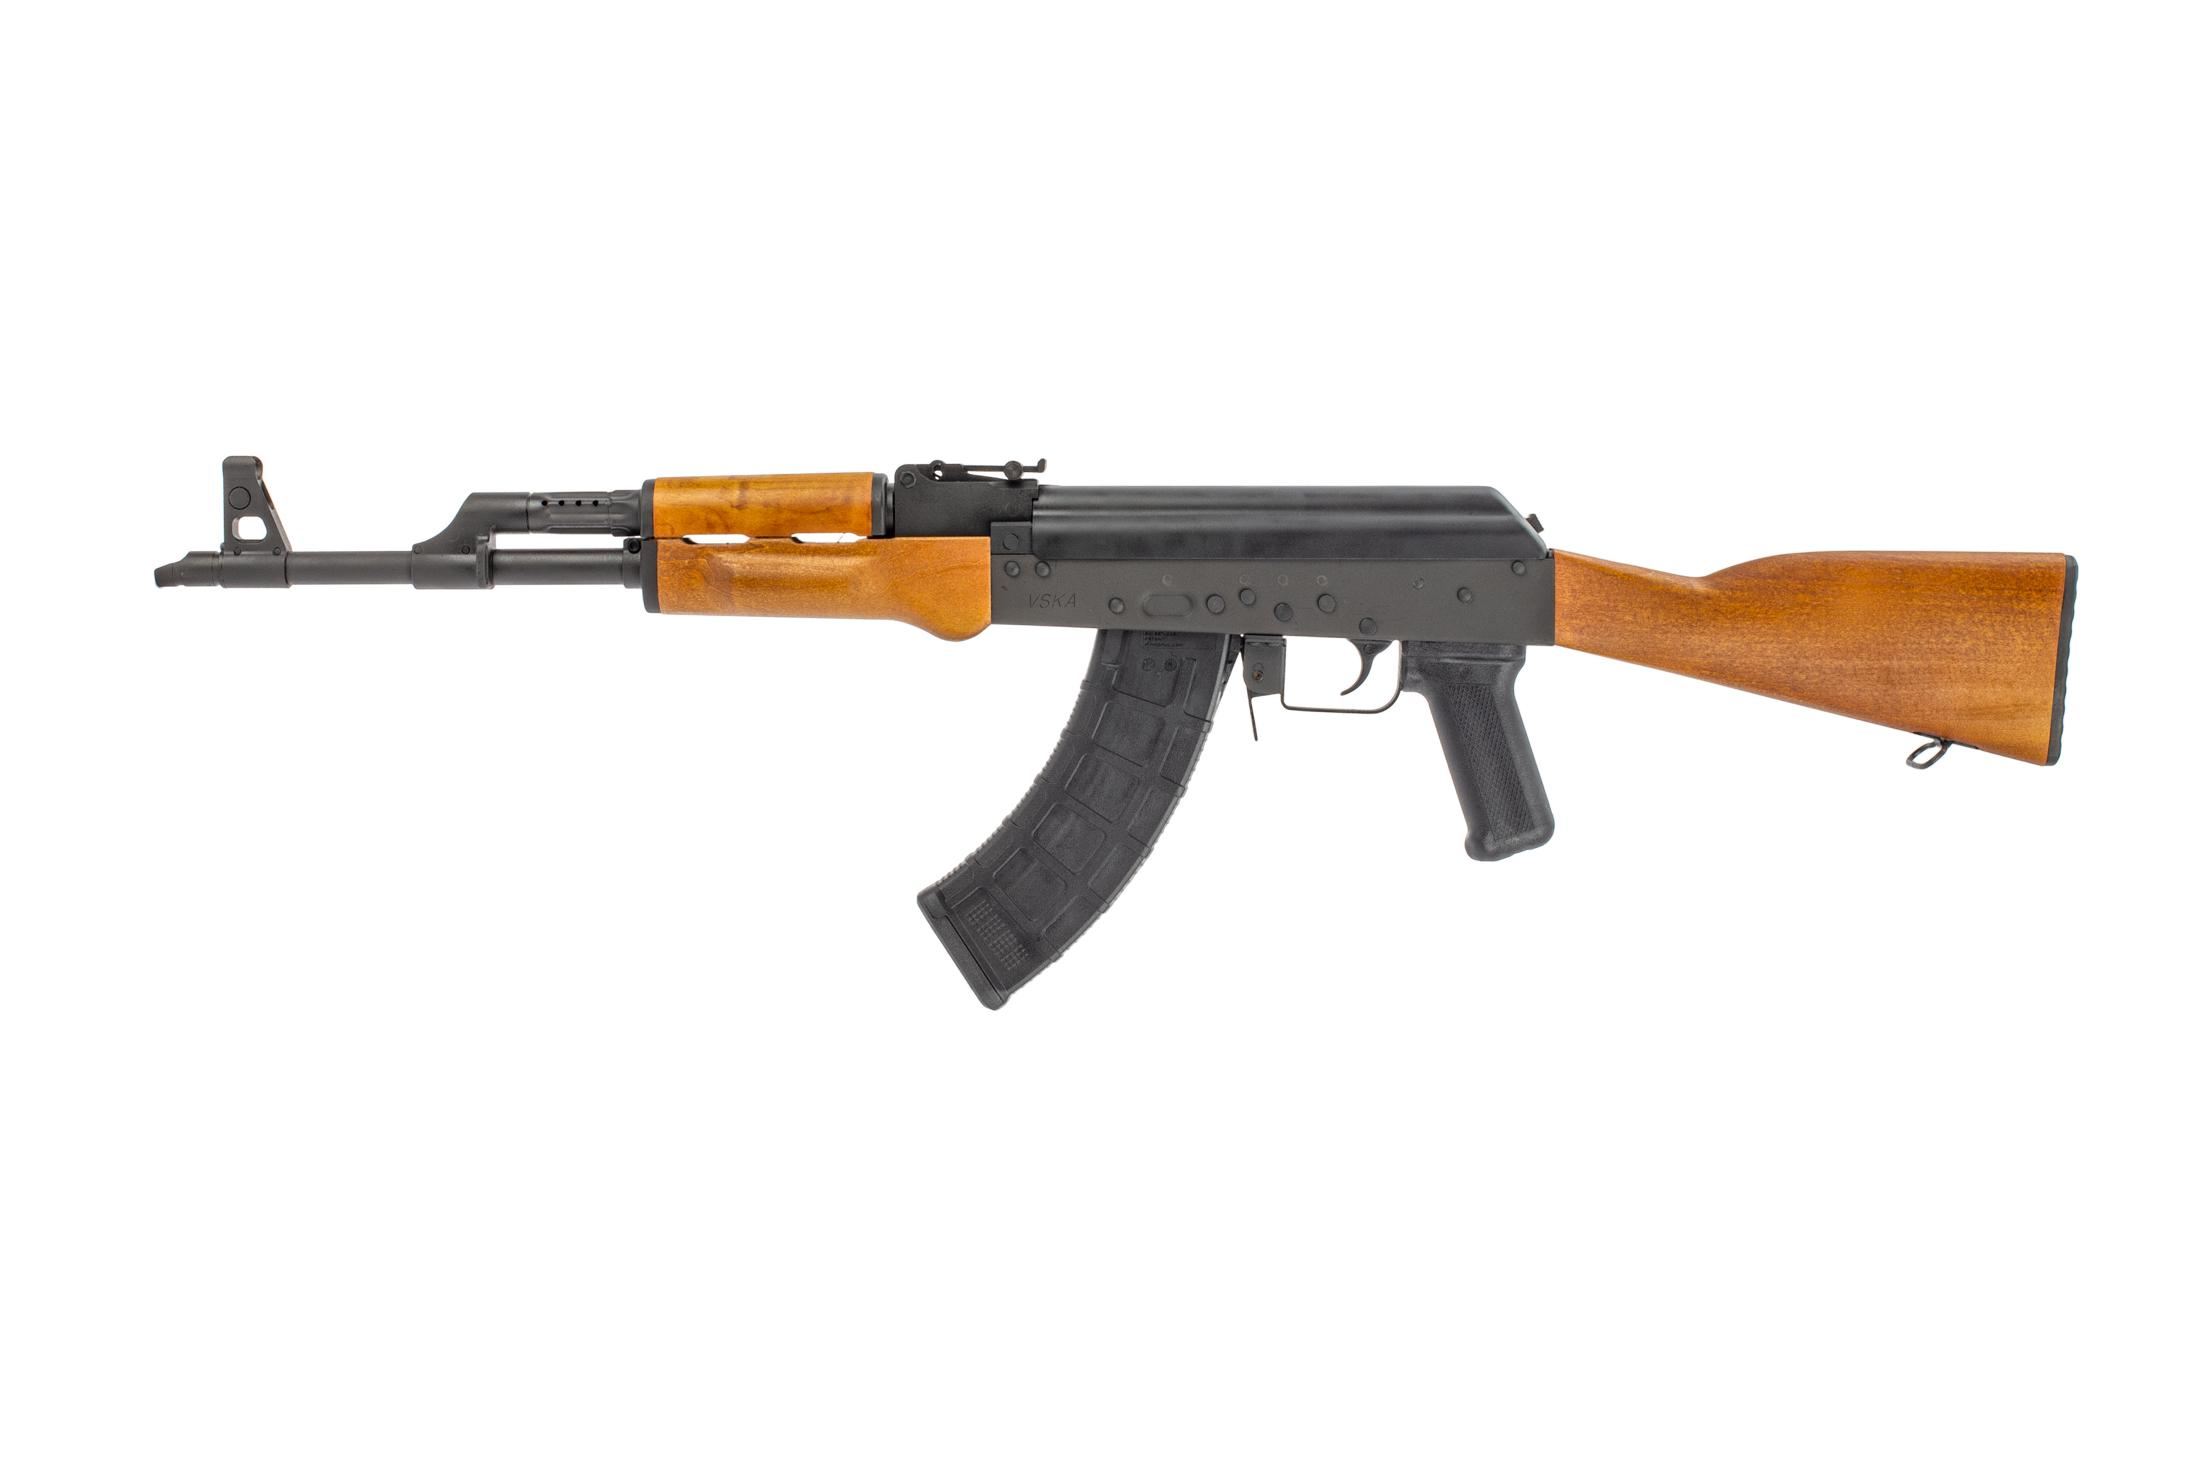 Century Arms VSKA 7.62x39 Complete AK-47 Rifle - Wood Furniture